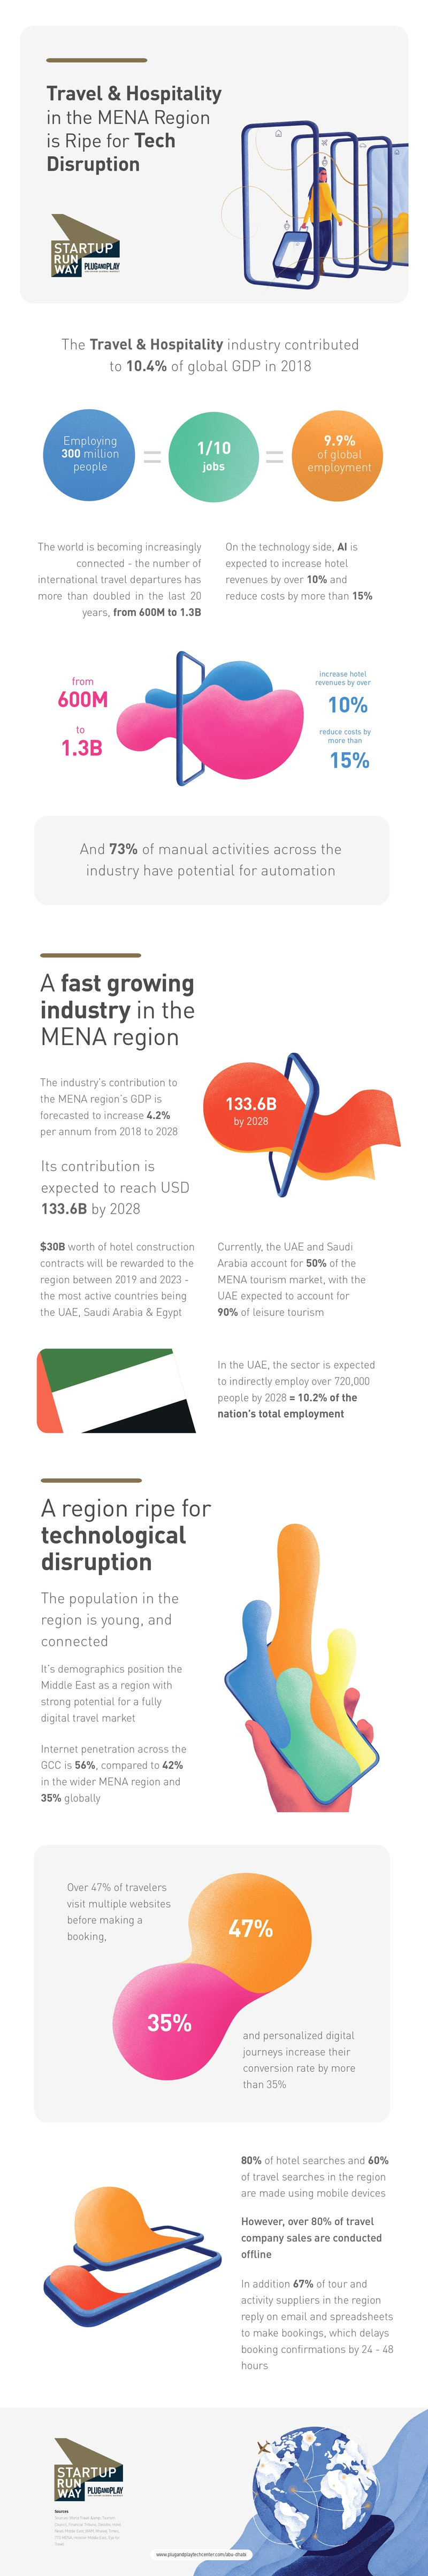 Infographic-MENA-Travel-Hospitality